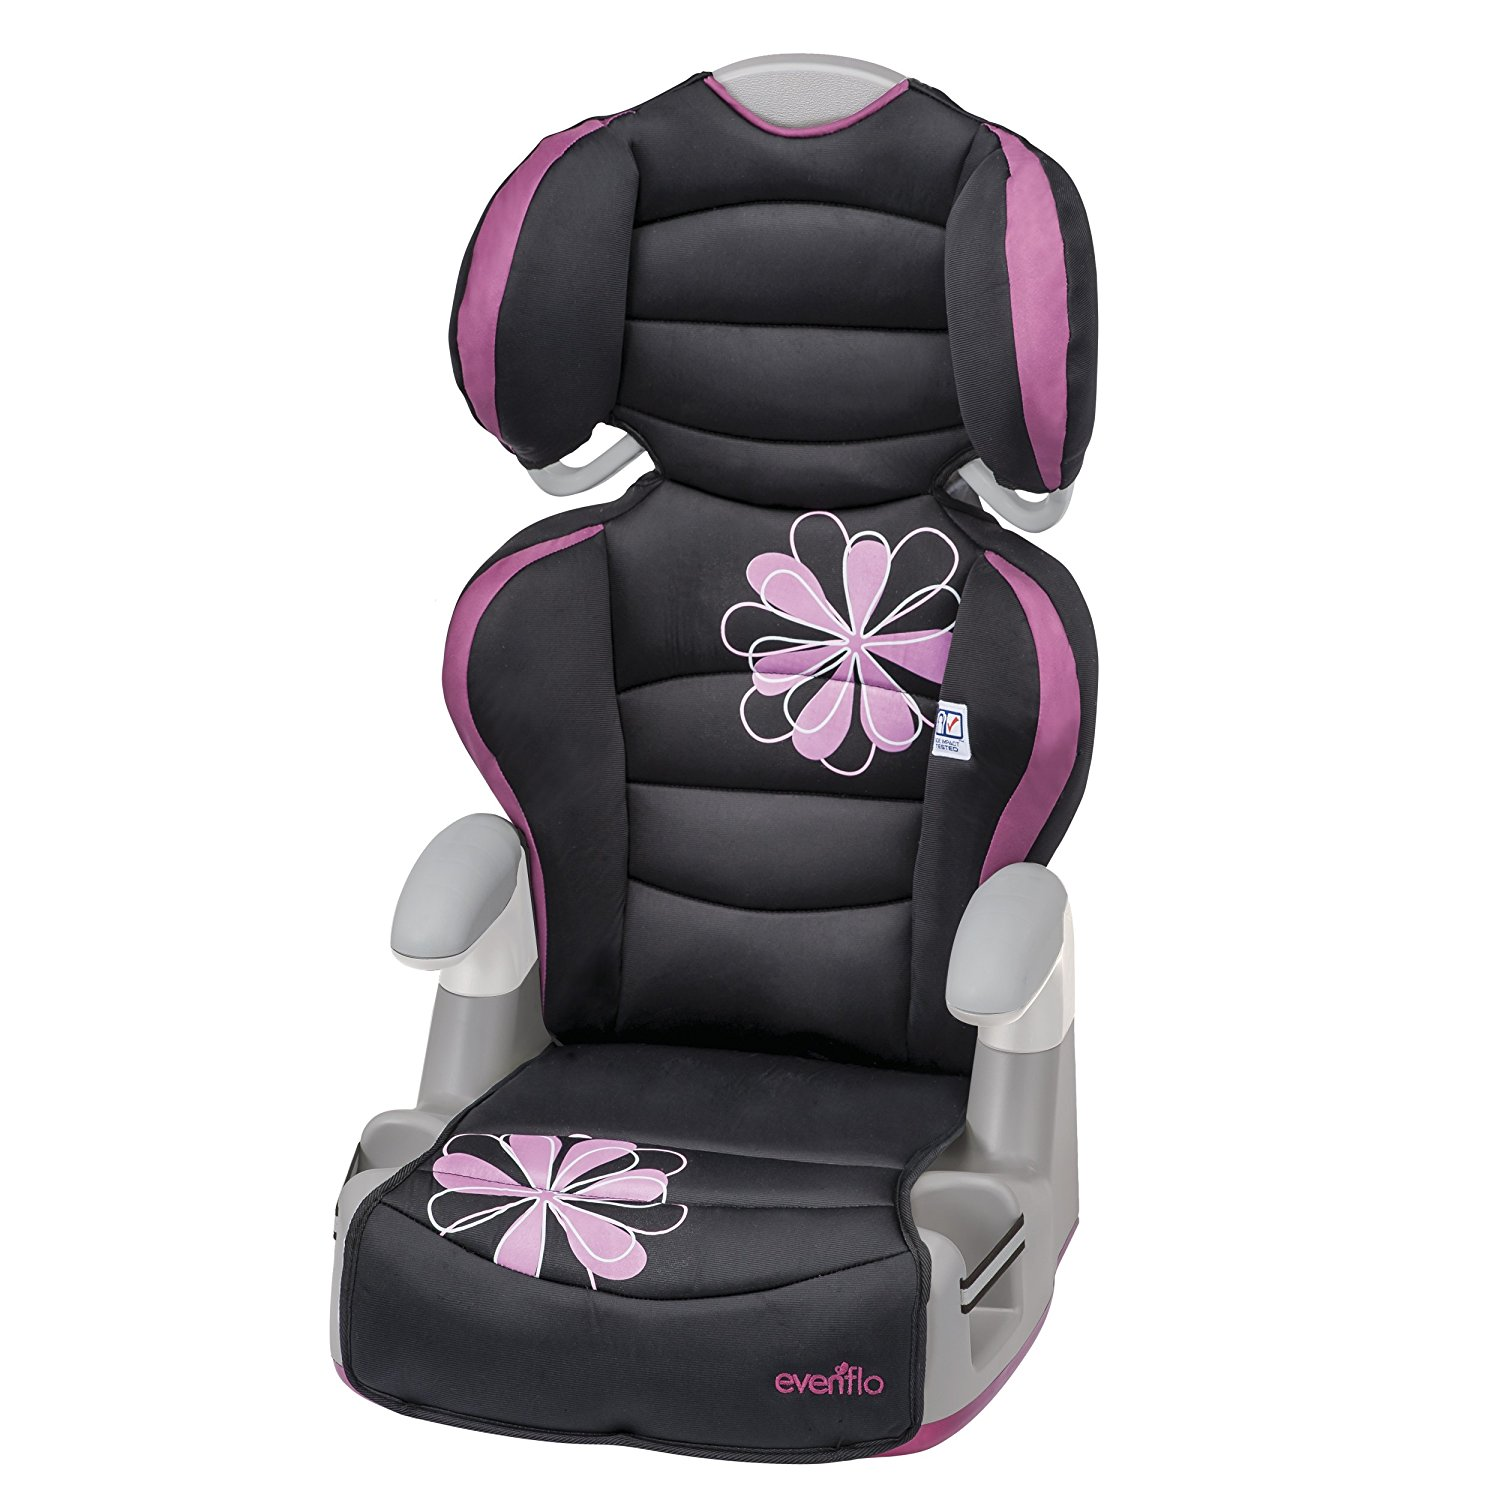 Amp High Back Booster Car Seat, Carrissa, US, Brand Evenflo